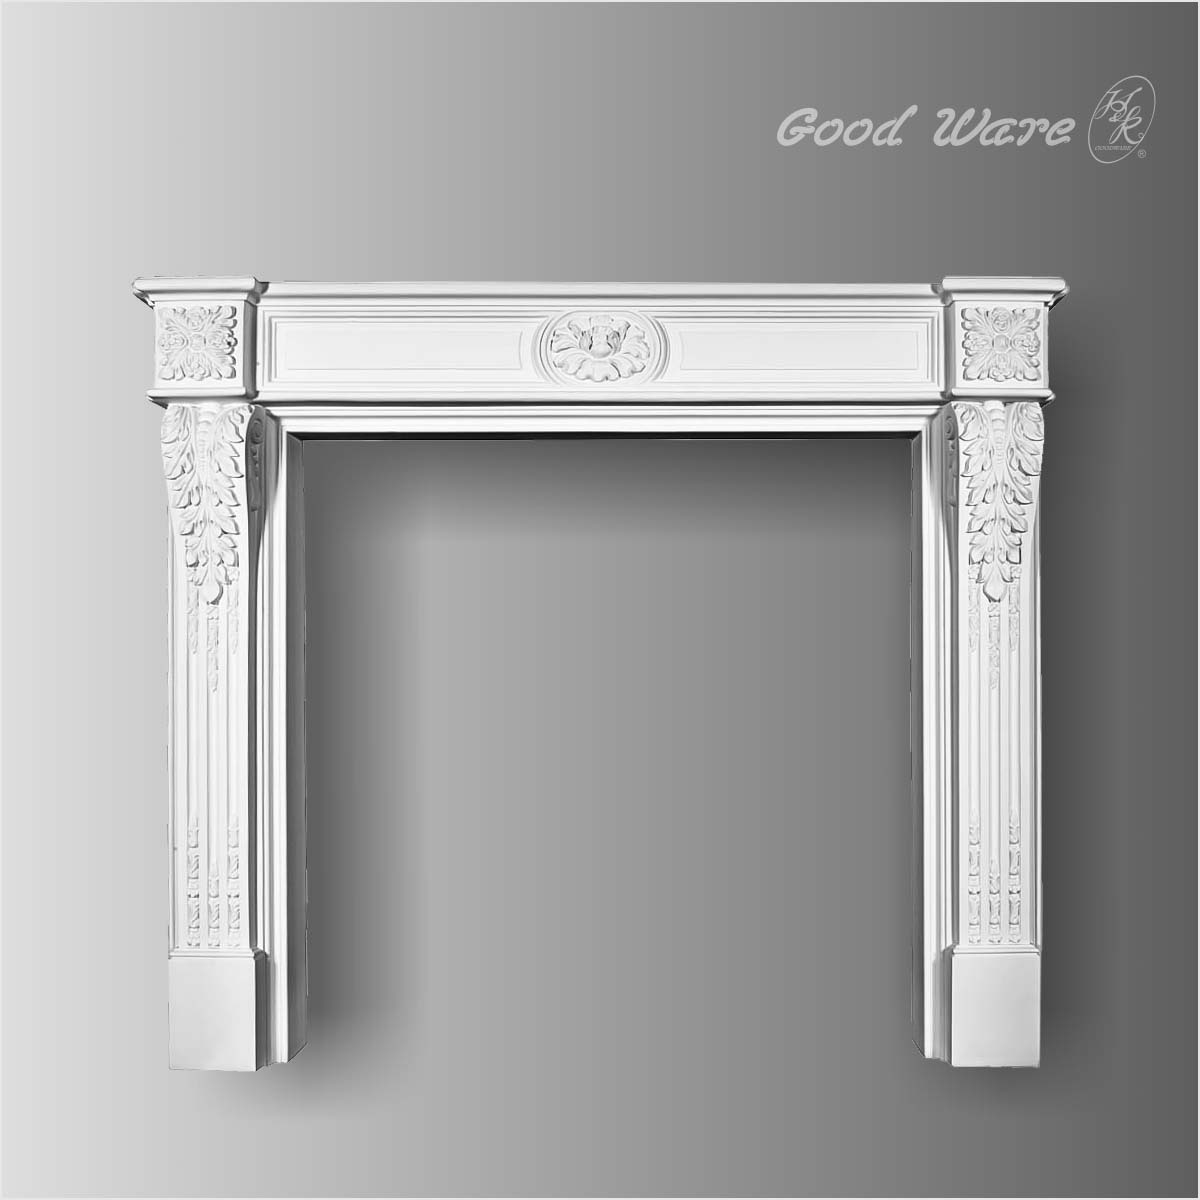 Polyurethane fireplace surrounds and mantels